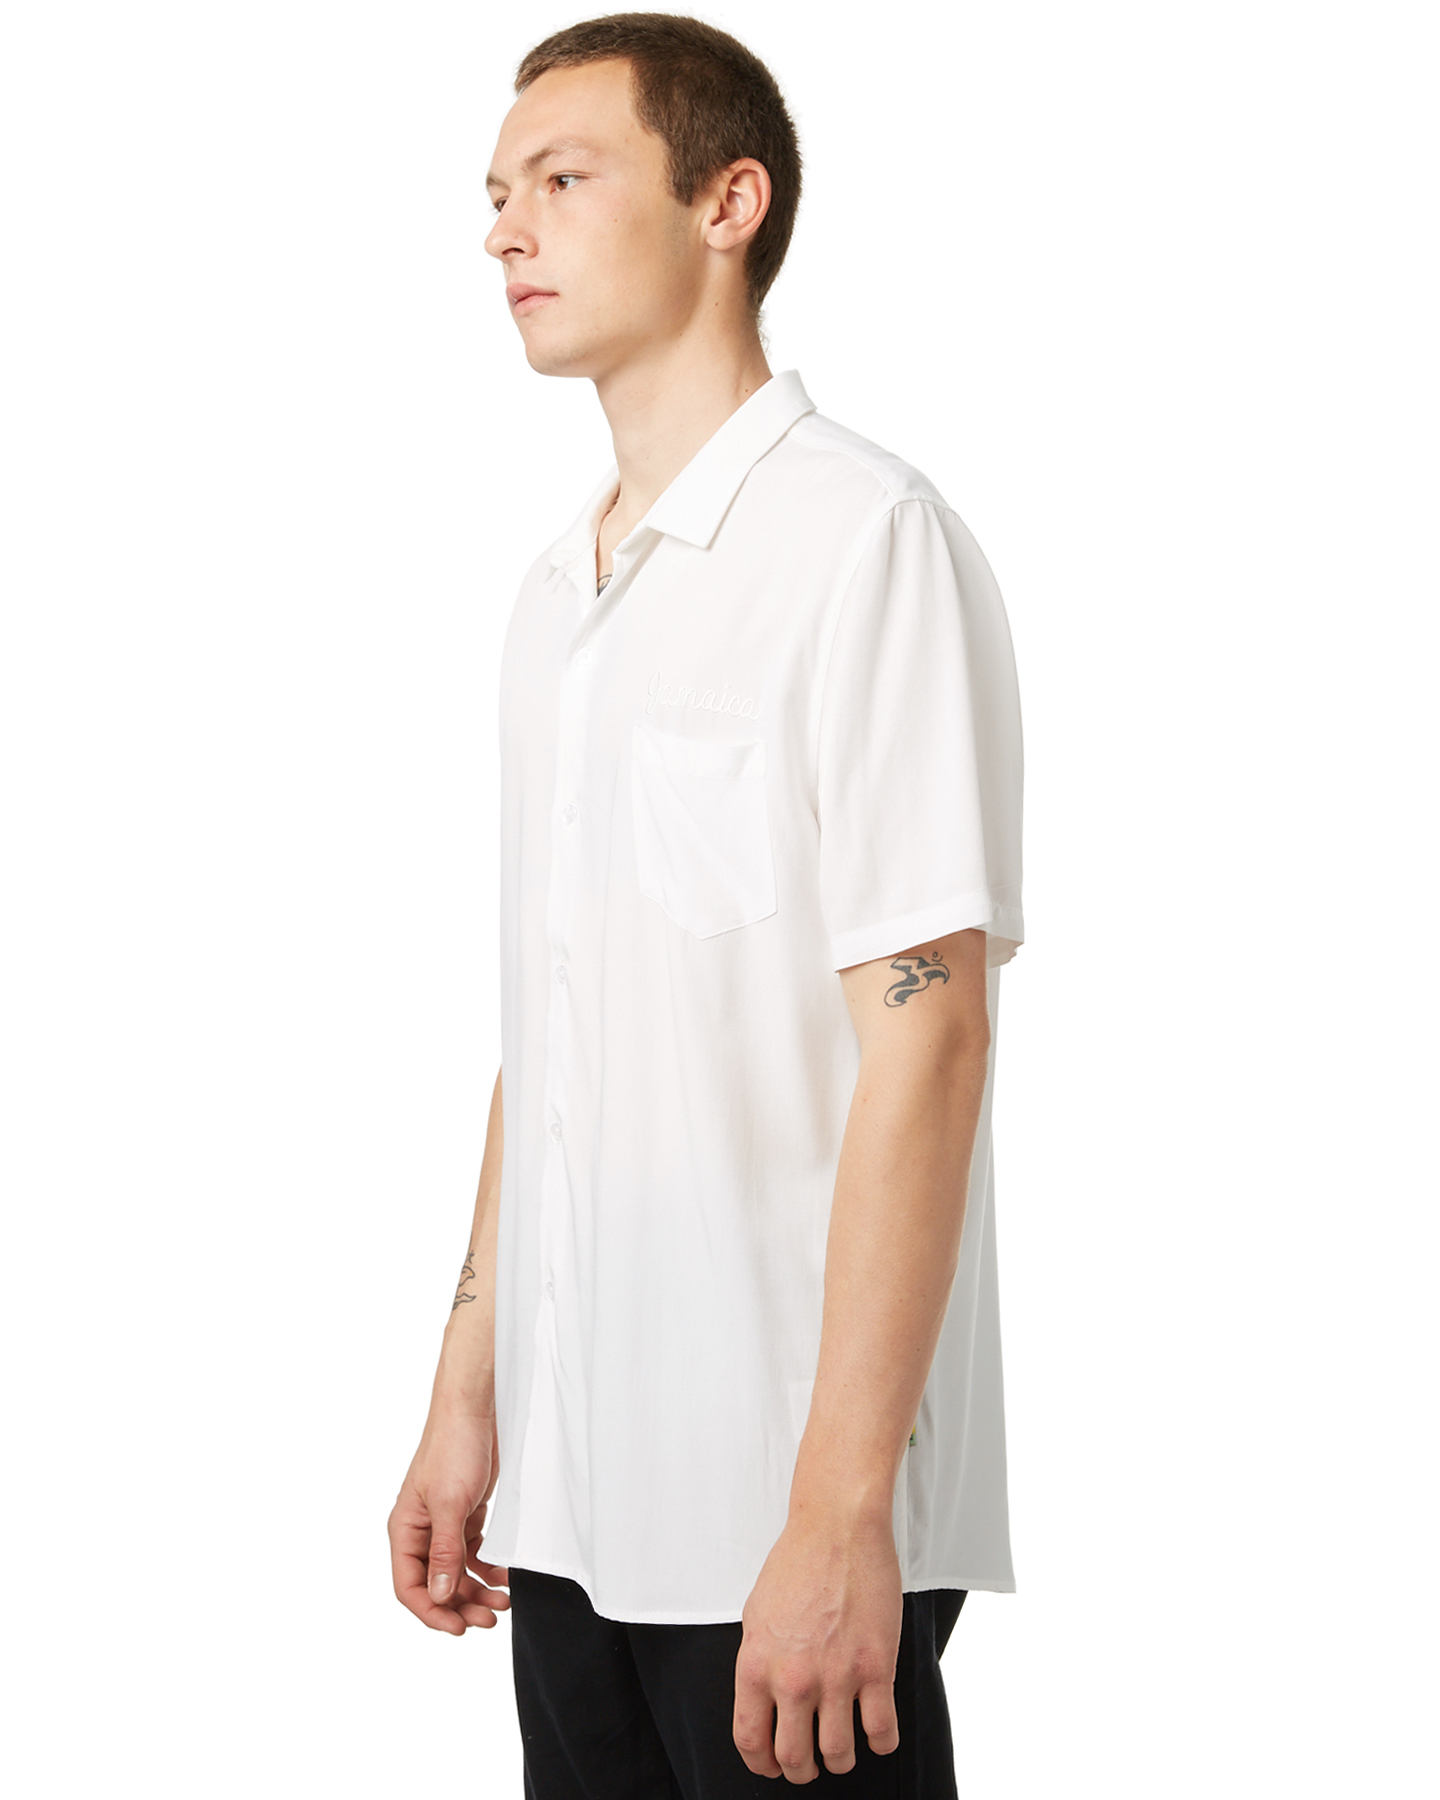 Not Clothing But Makeup Is Just As Important To Finish A: No News Kingston Ss Mens Shirt - Not White